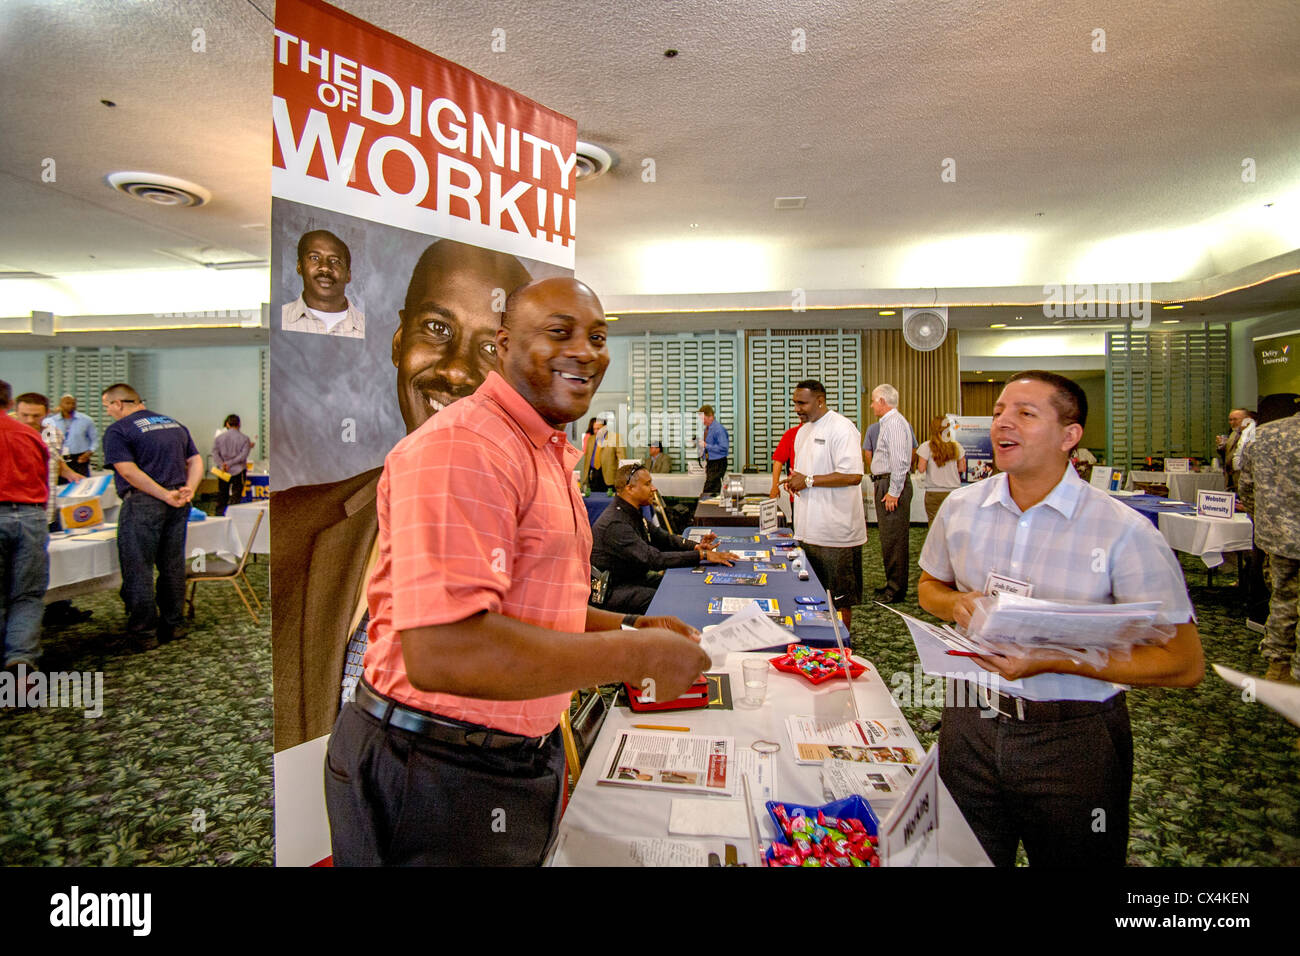 A jolly African American reminds job seekers of the dignity of work at a job fair for military veterans in Santa - Stock Image